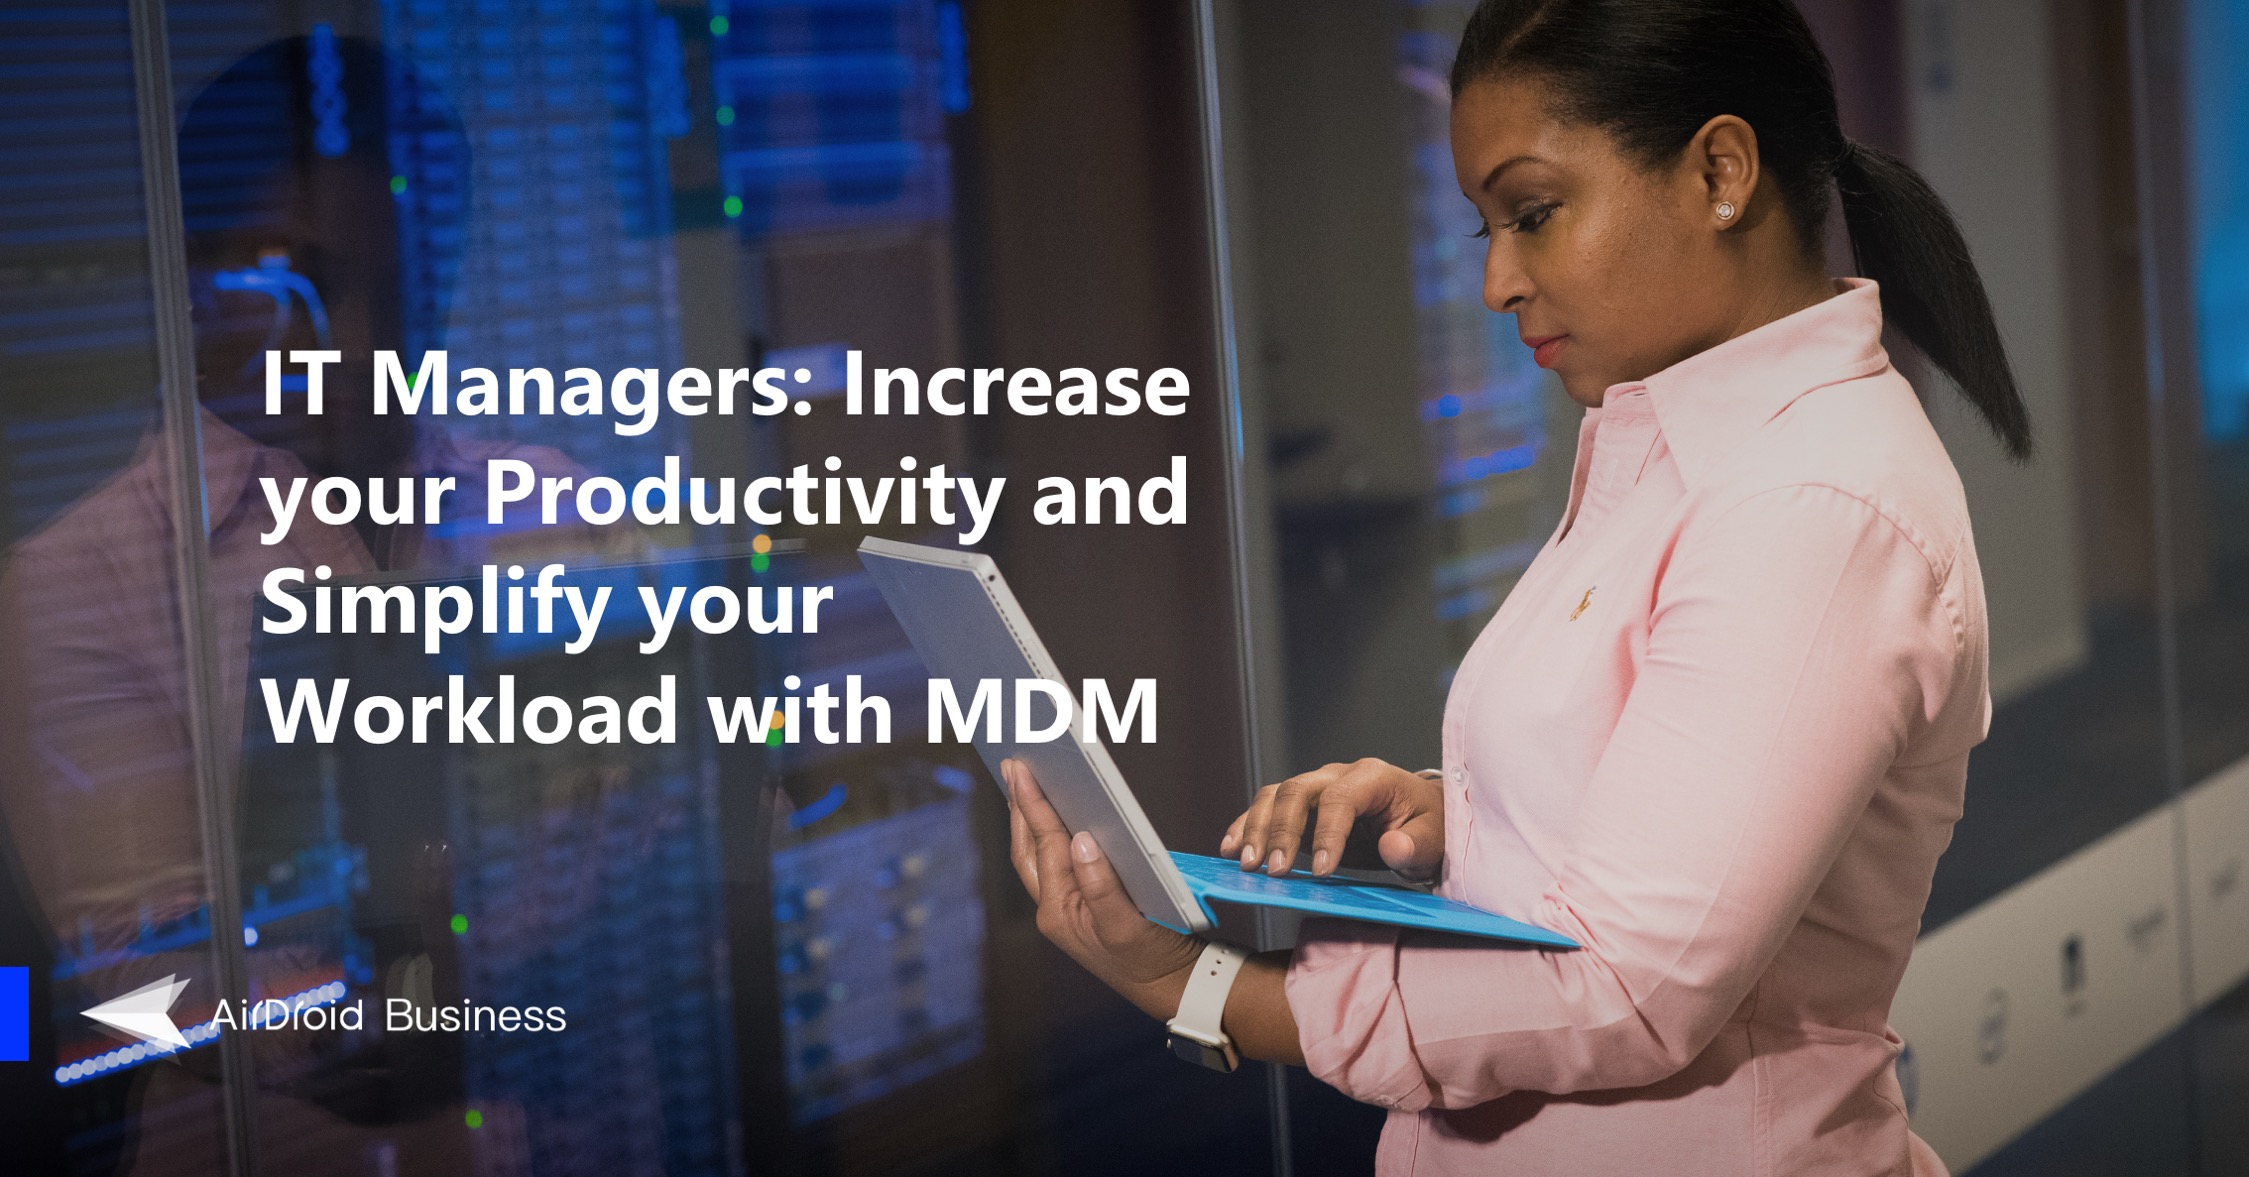 mdm-software-for-it-manager